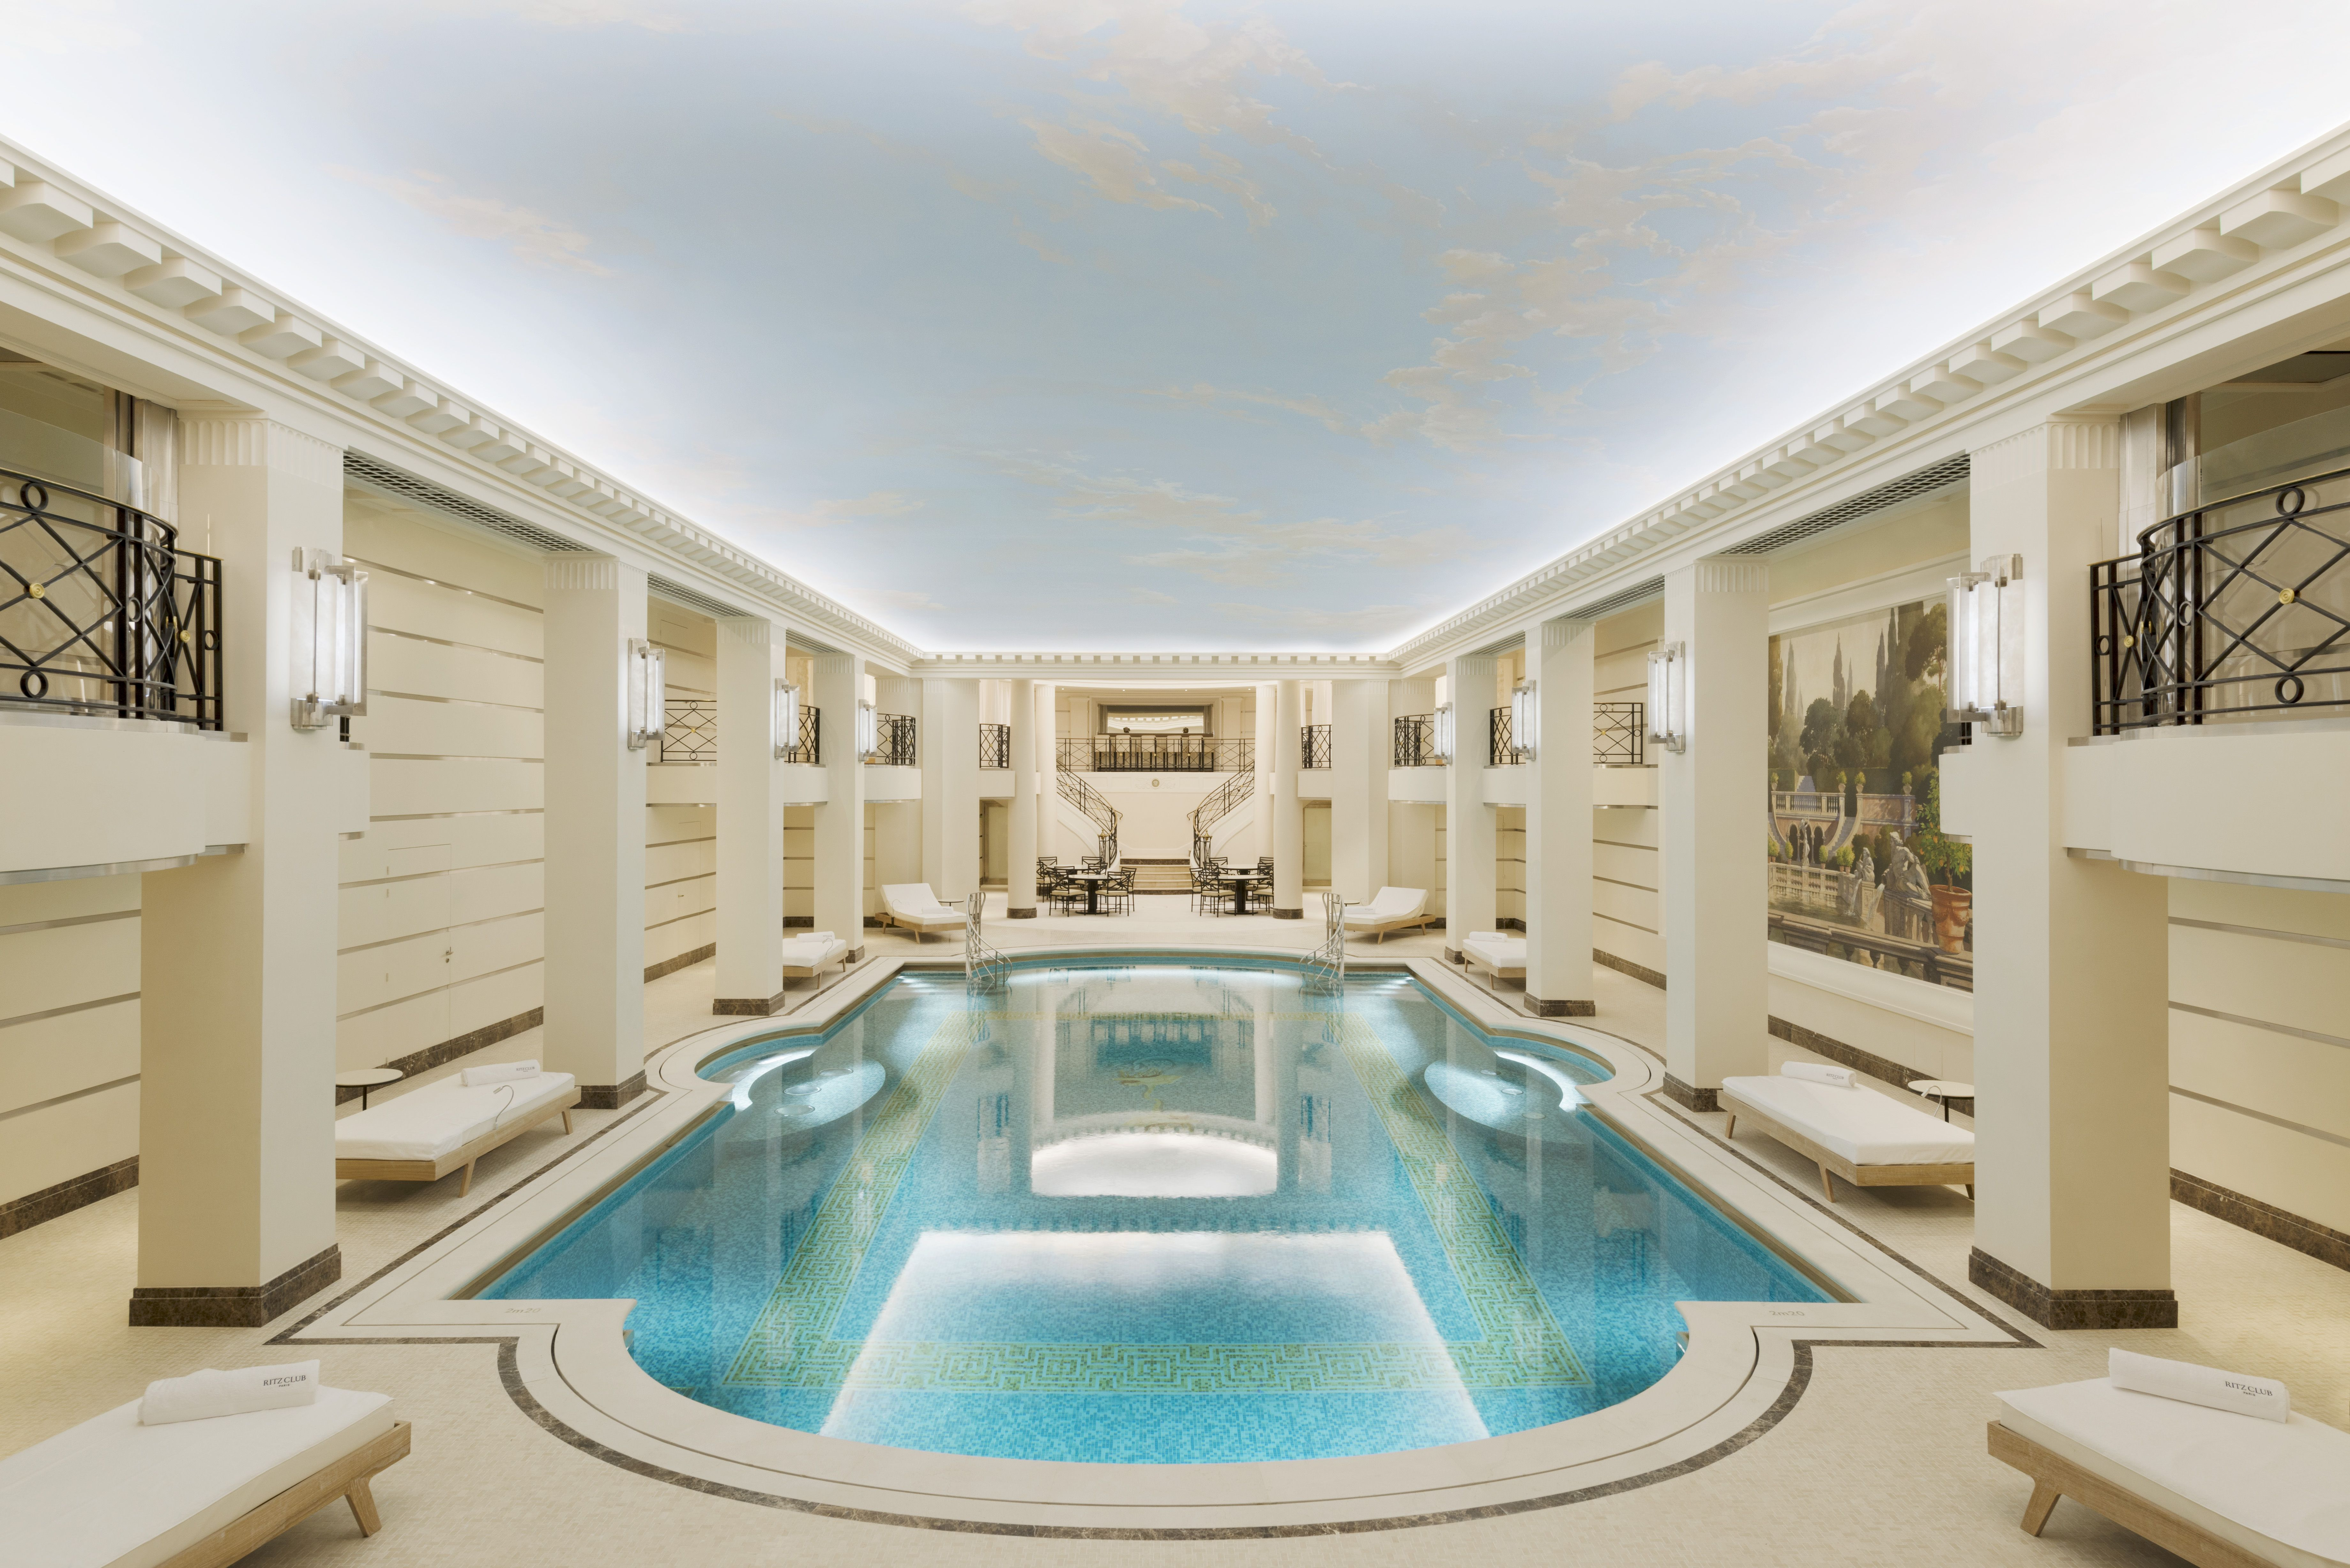 The swimming pool is appropriately grand.